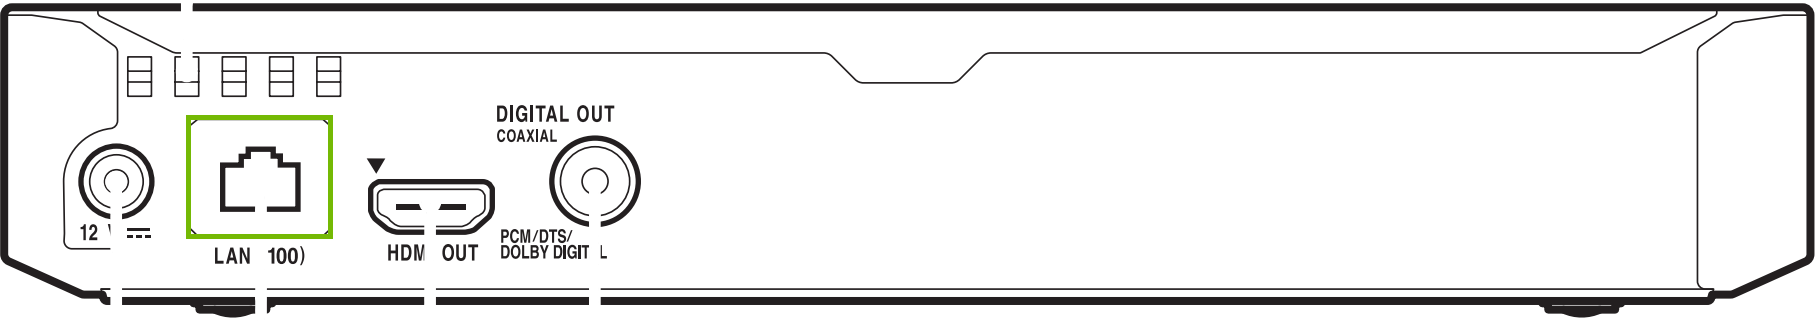 diagram of back of blu-ray player with LAN port highlighted